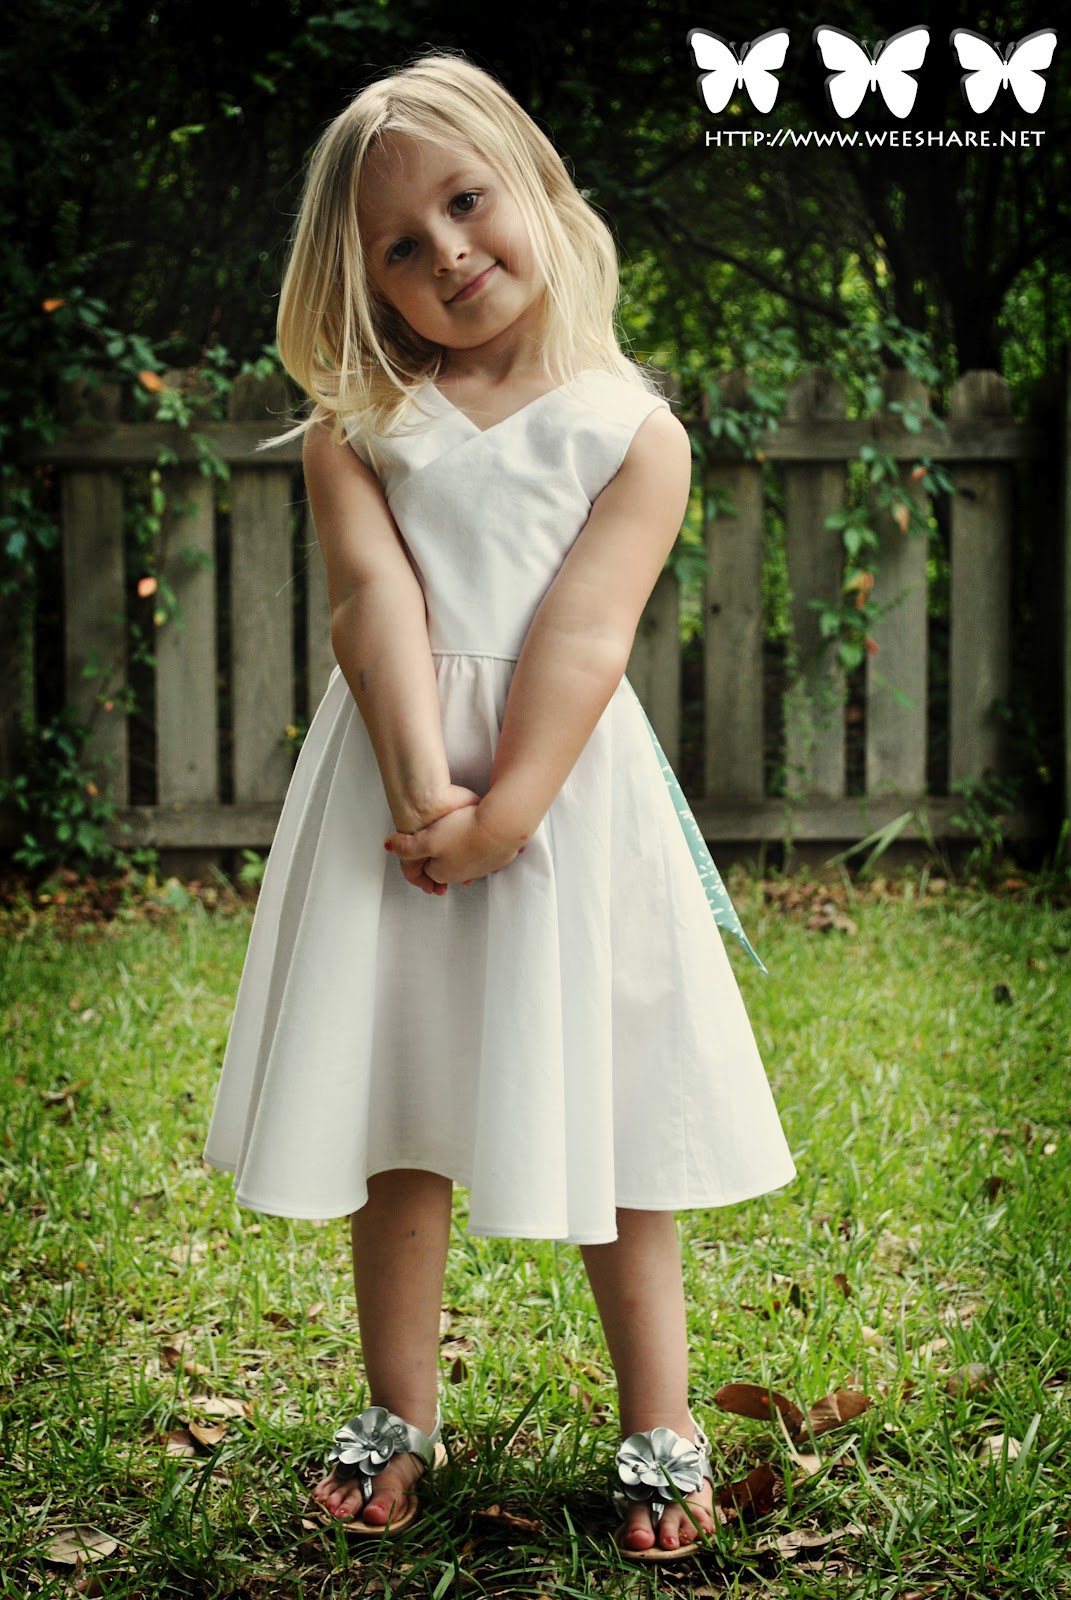 Delightful girls sewing patterns from petite kids boutique review based on the measurements included with the pattern i chose to make the dress in a size 4 there are not too many pattern pieces to cut out which was very jeuxipadfo Image collections